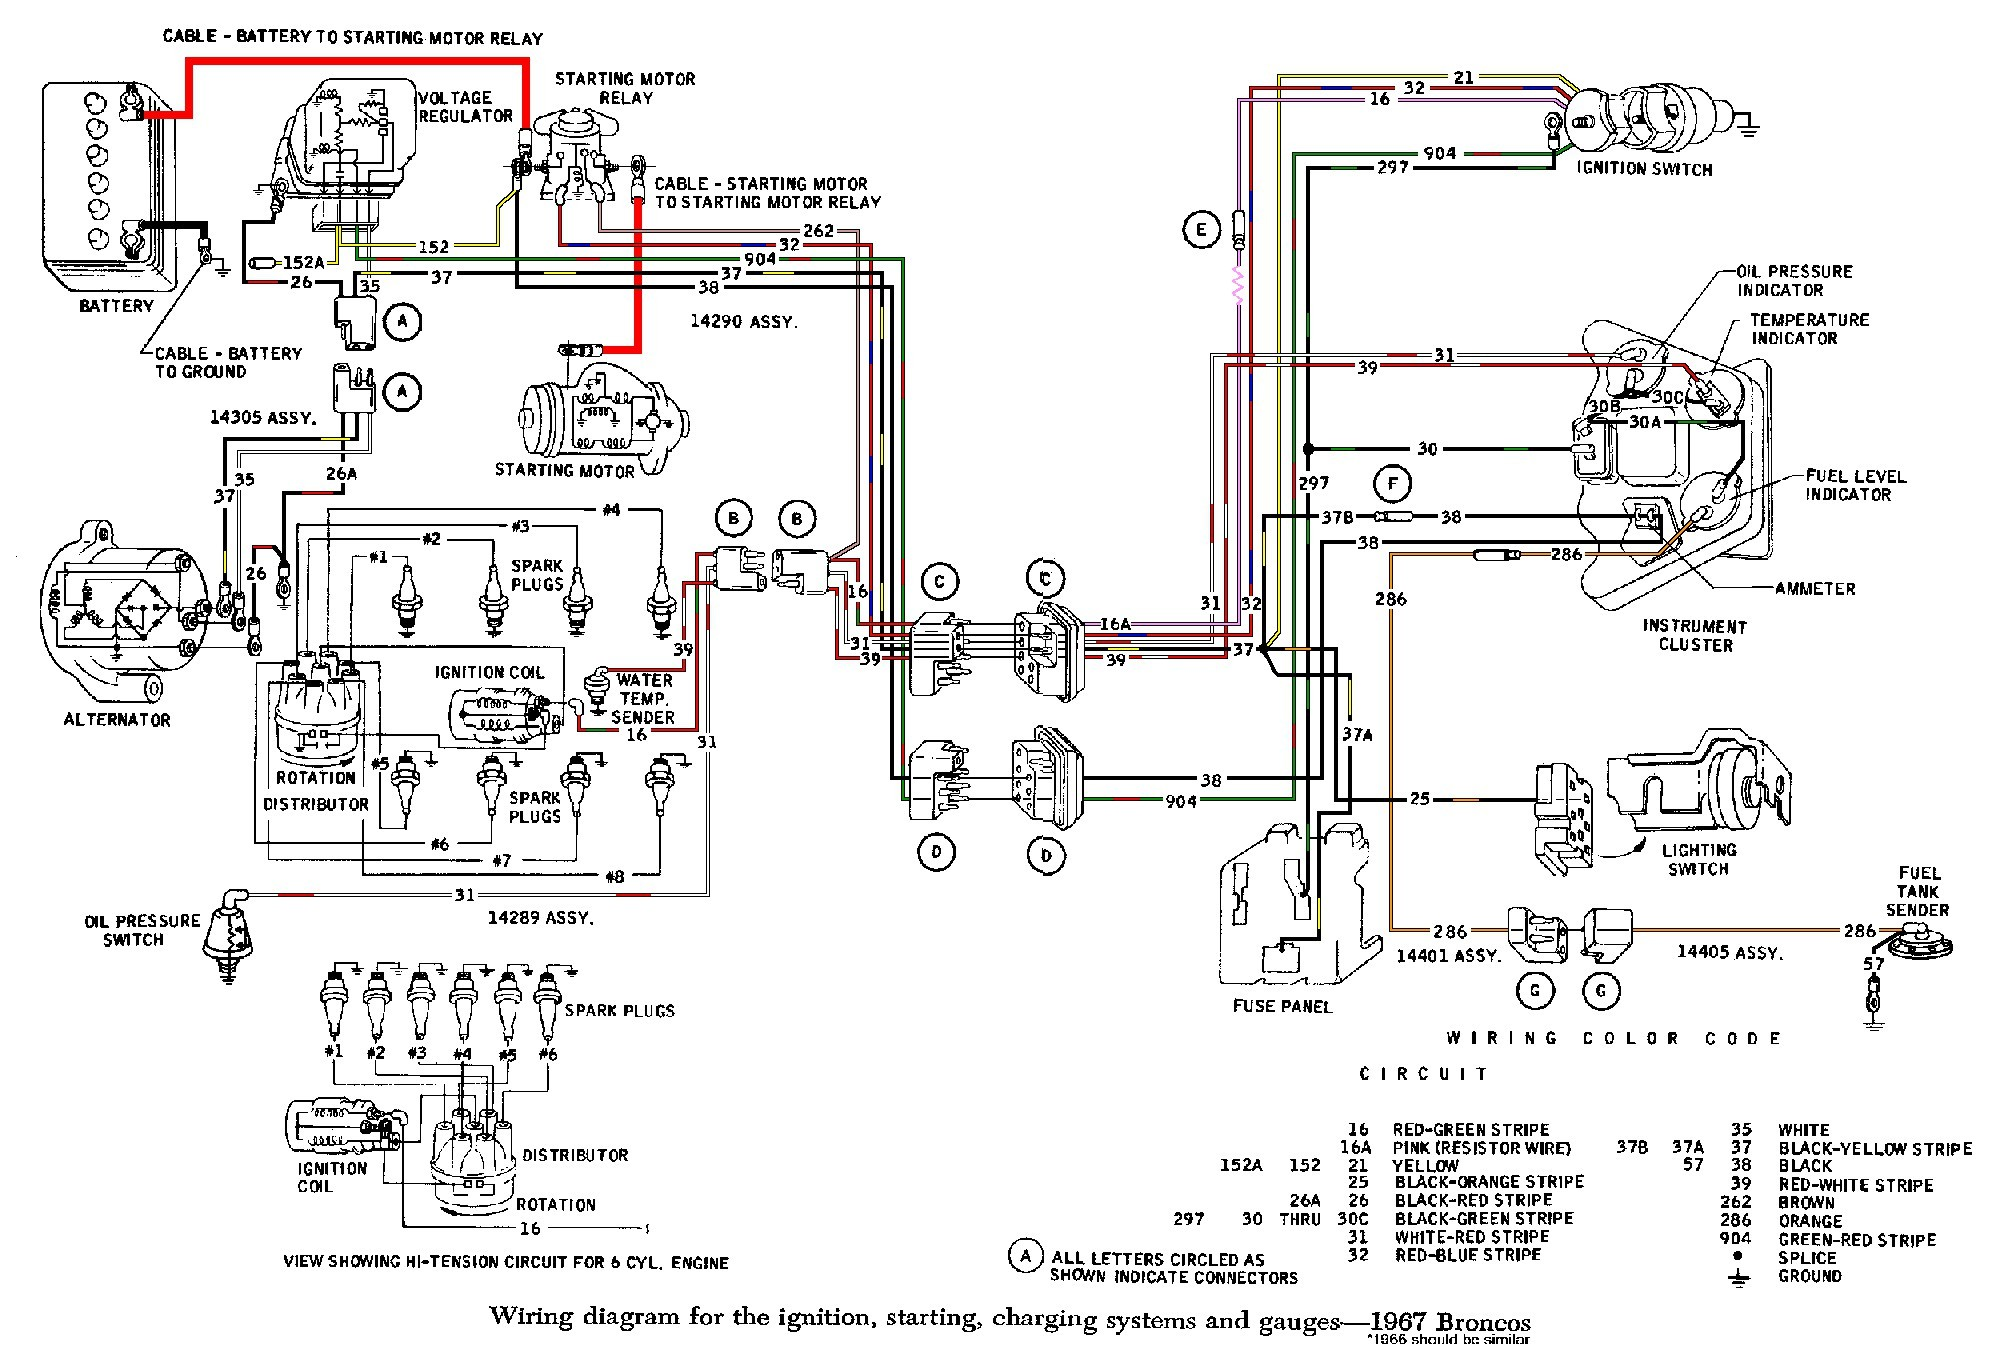 Car Stereo Wiring Diagram Jvc Ks Rx147 Trusted Kenwood Harness File Detail Yellow Wire